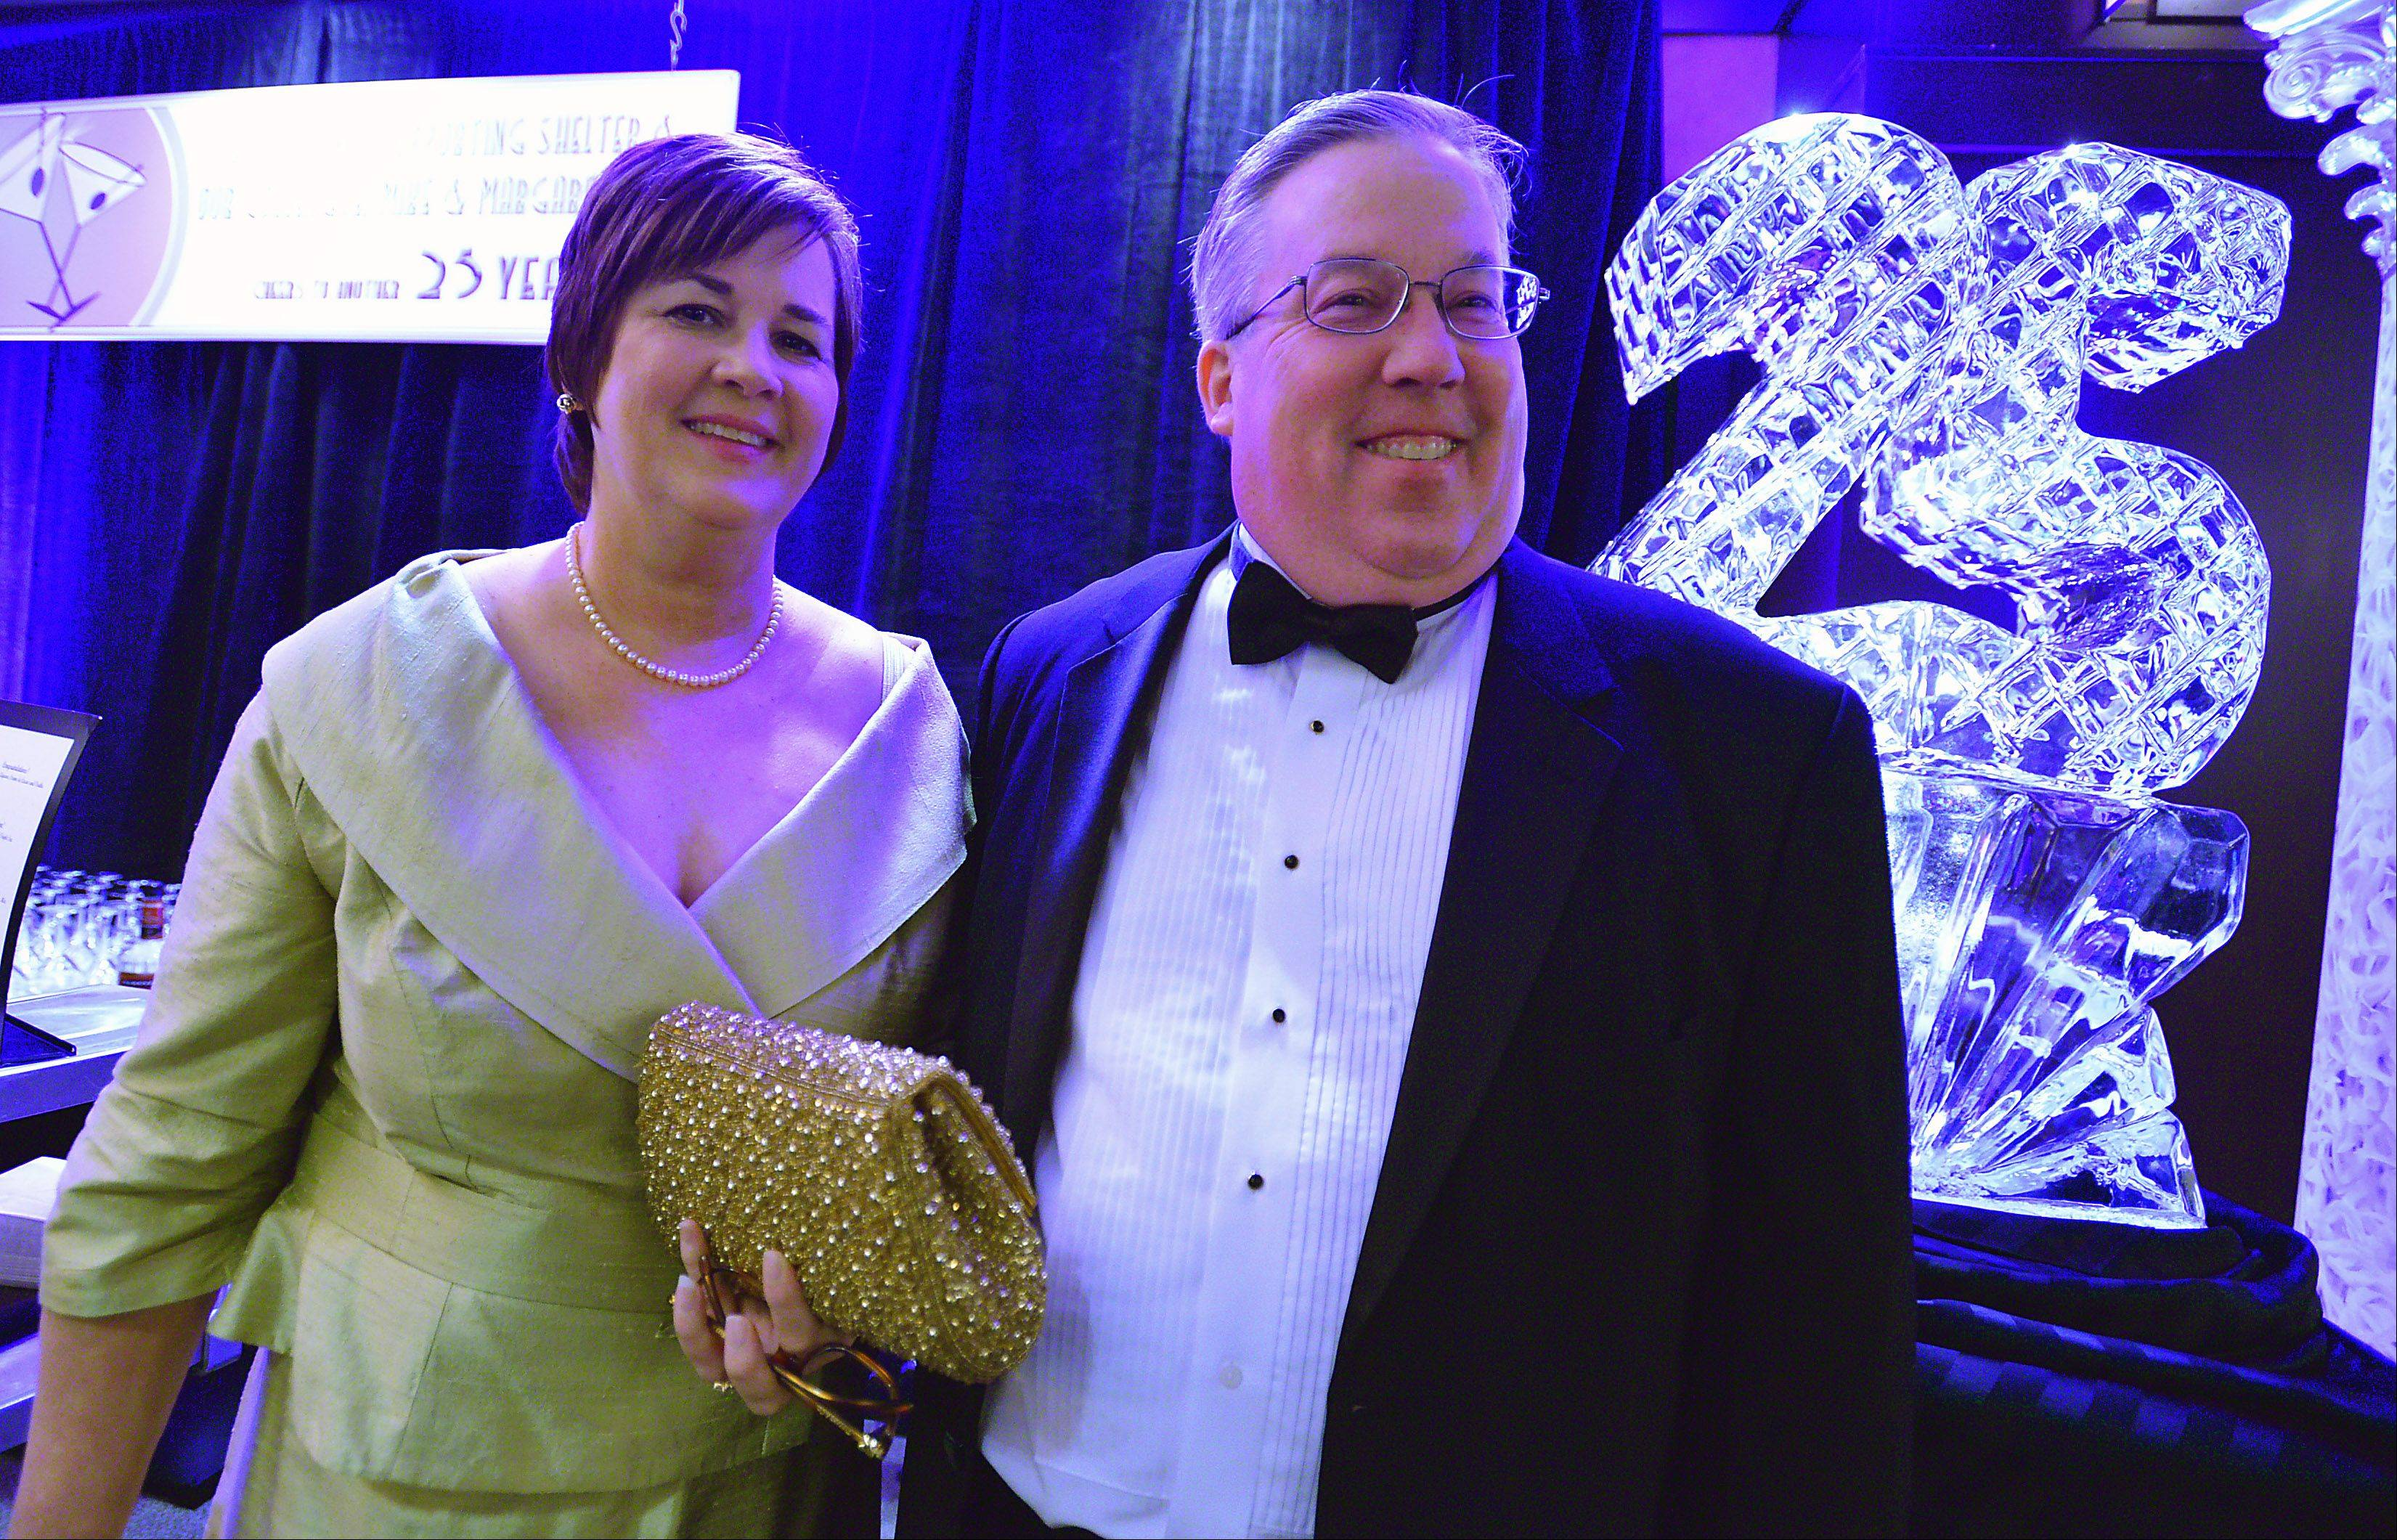 Robert O' Meara, president of the Shelter board, with wife Sue of Barrington Hills attend the 25th anniversary Shelter Charity Ball Friday at the Schaumburg Hyatt. The ball generates the money to open group homes and develop programs for troubled teens.